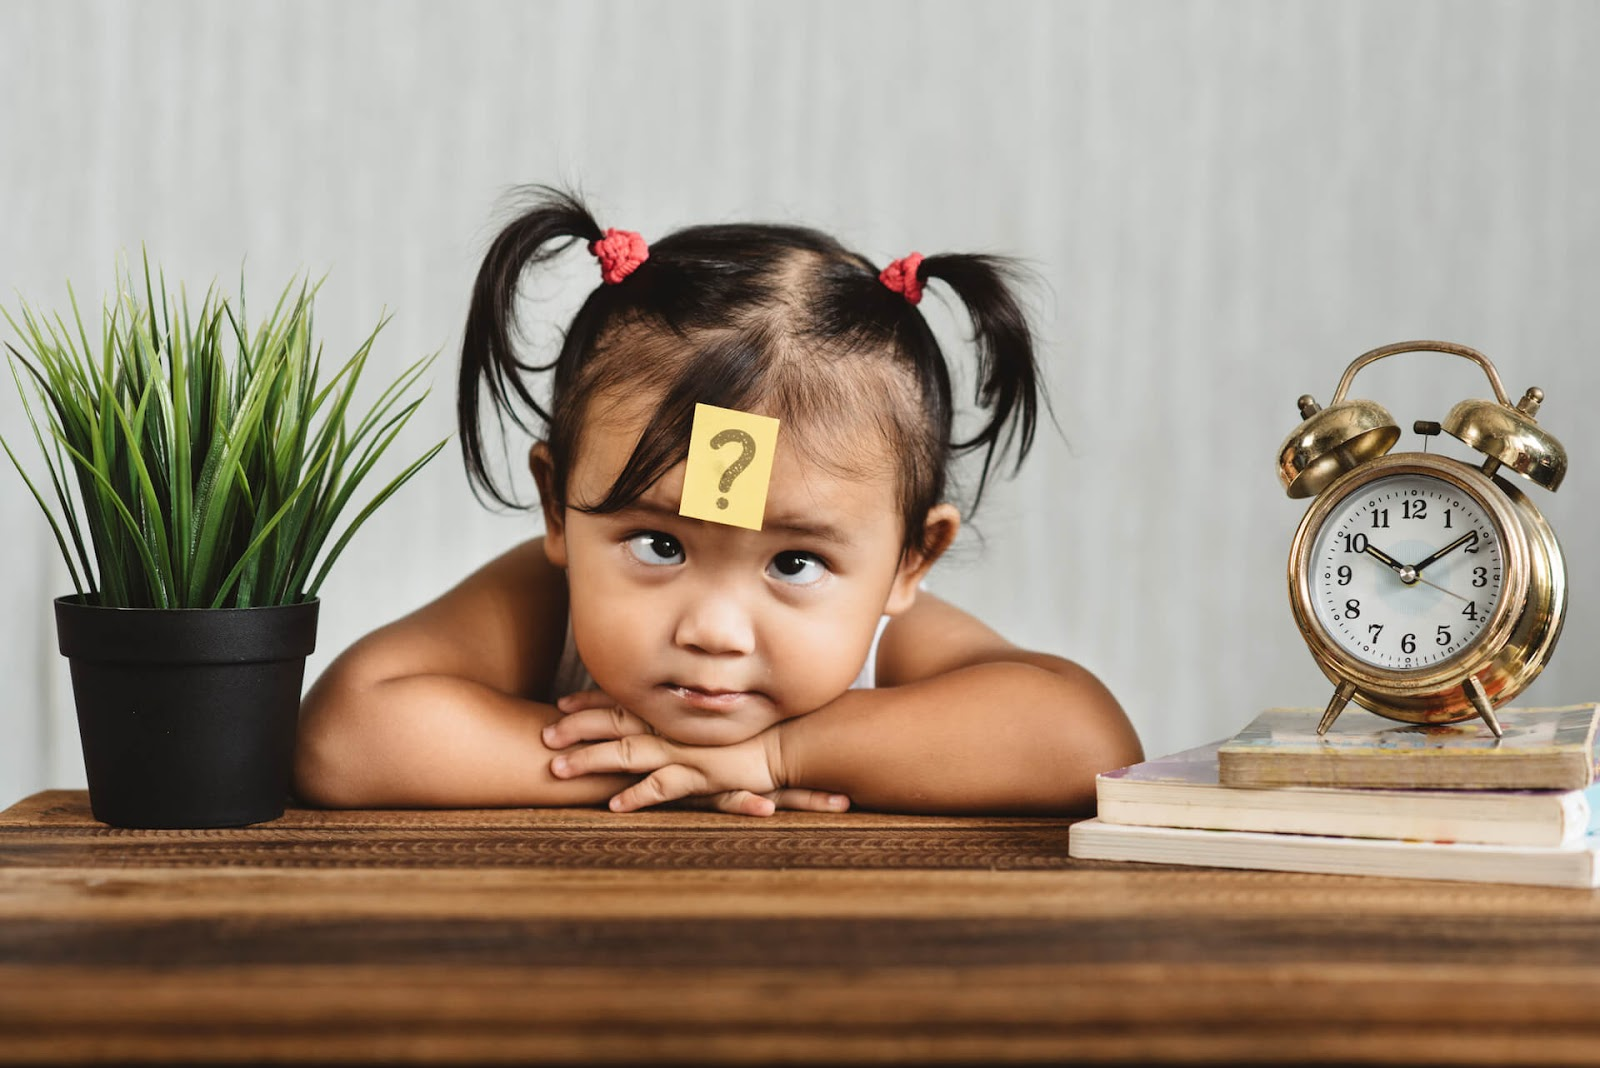 Young girl with a question mark stuck to her forehead